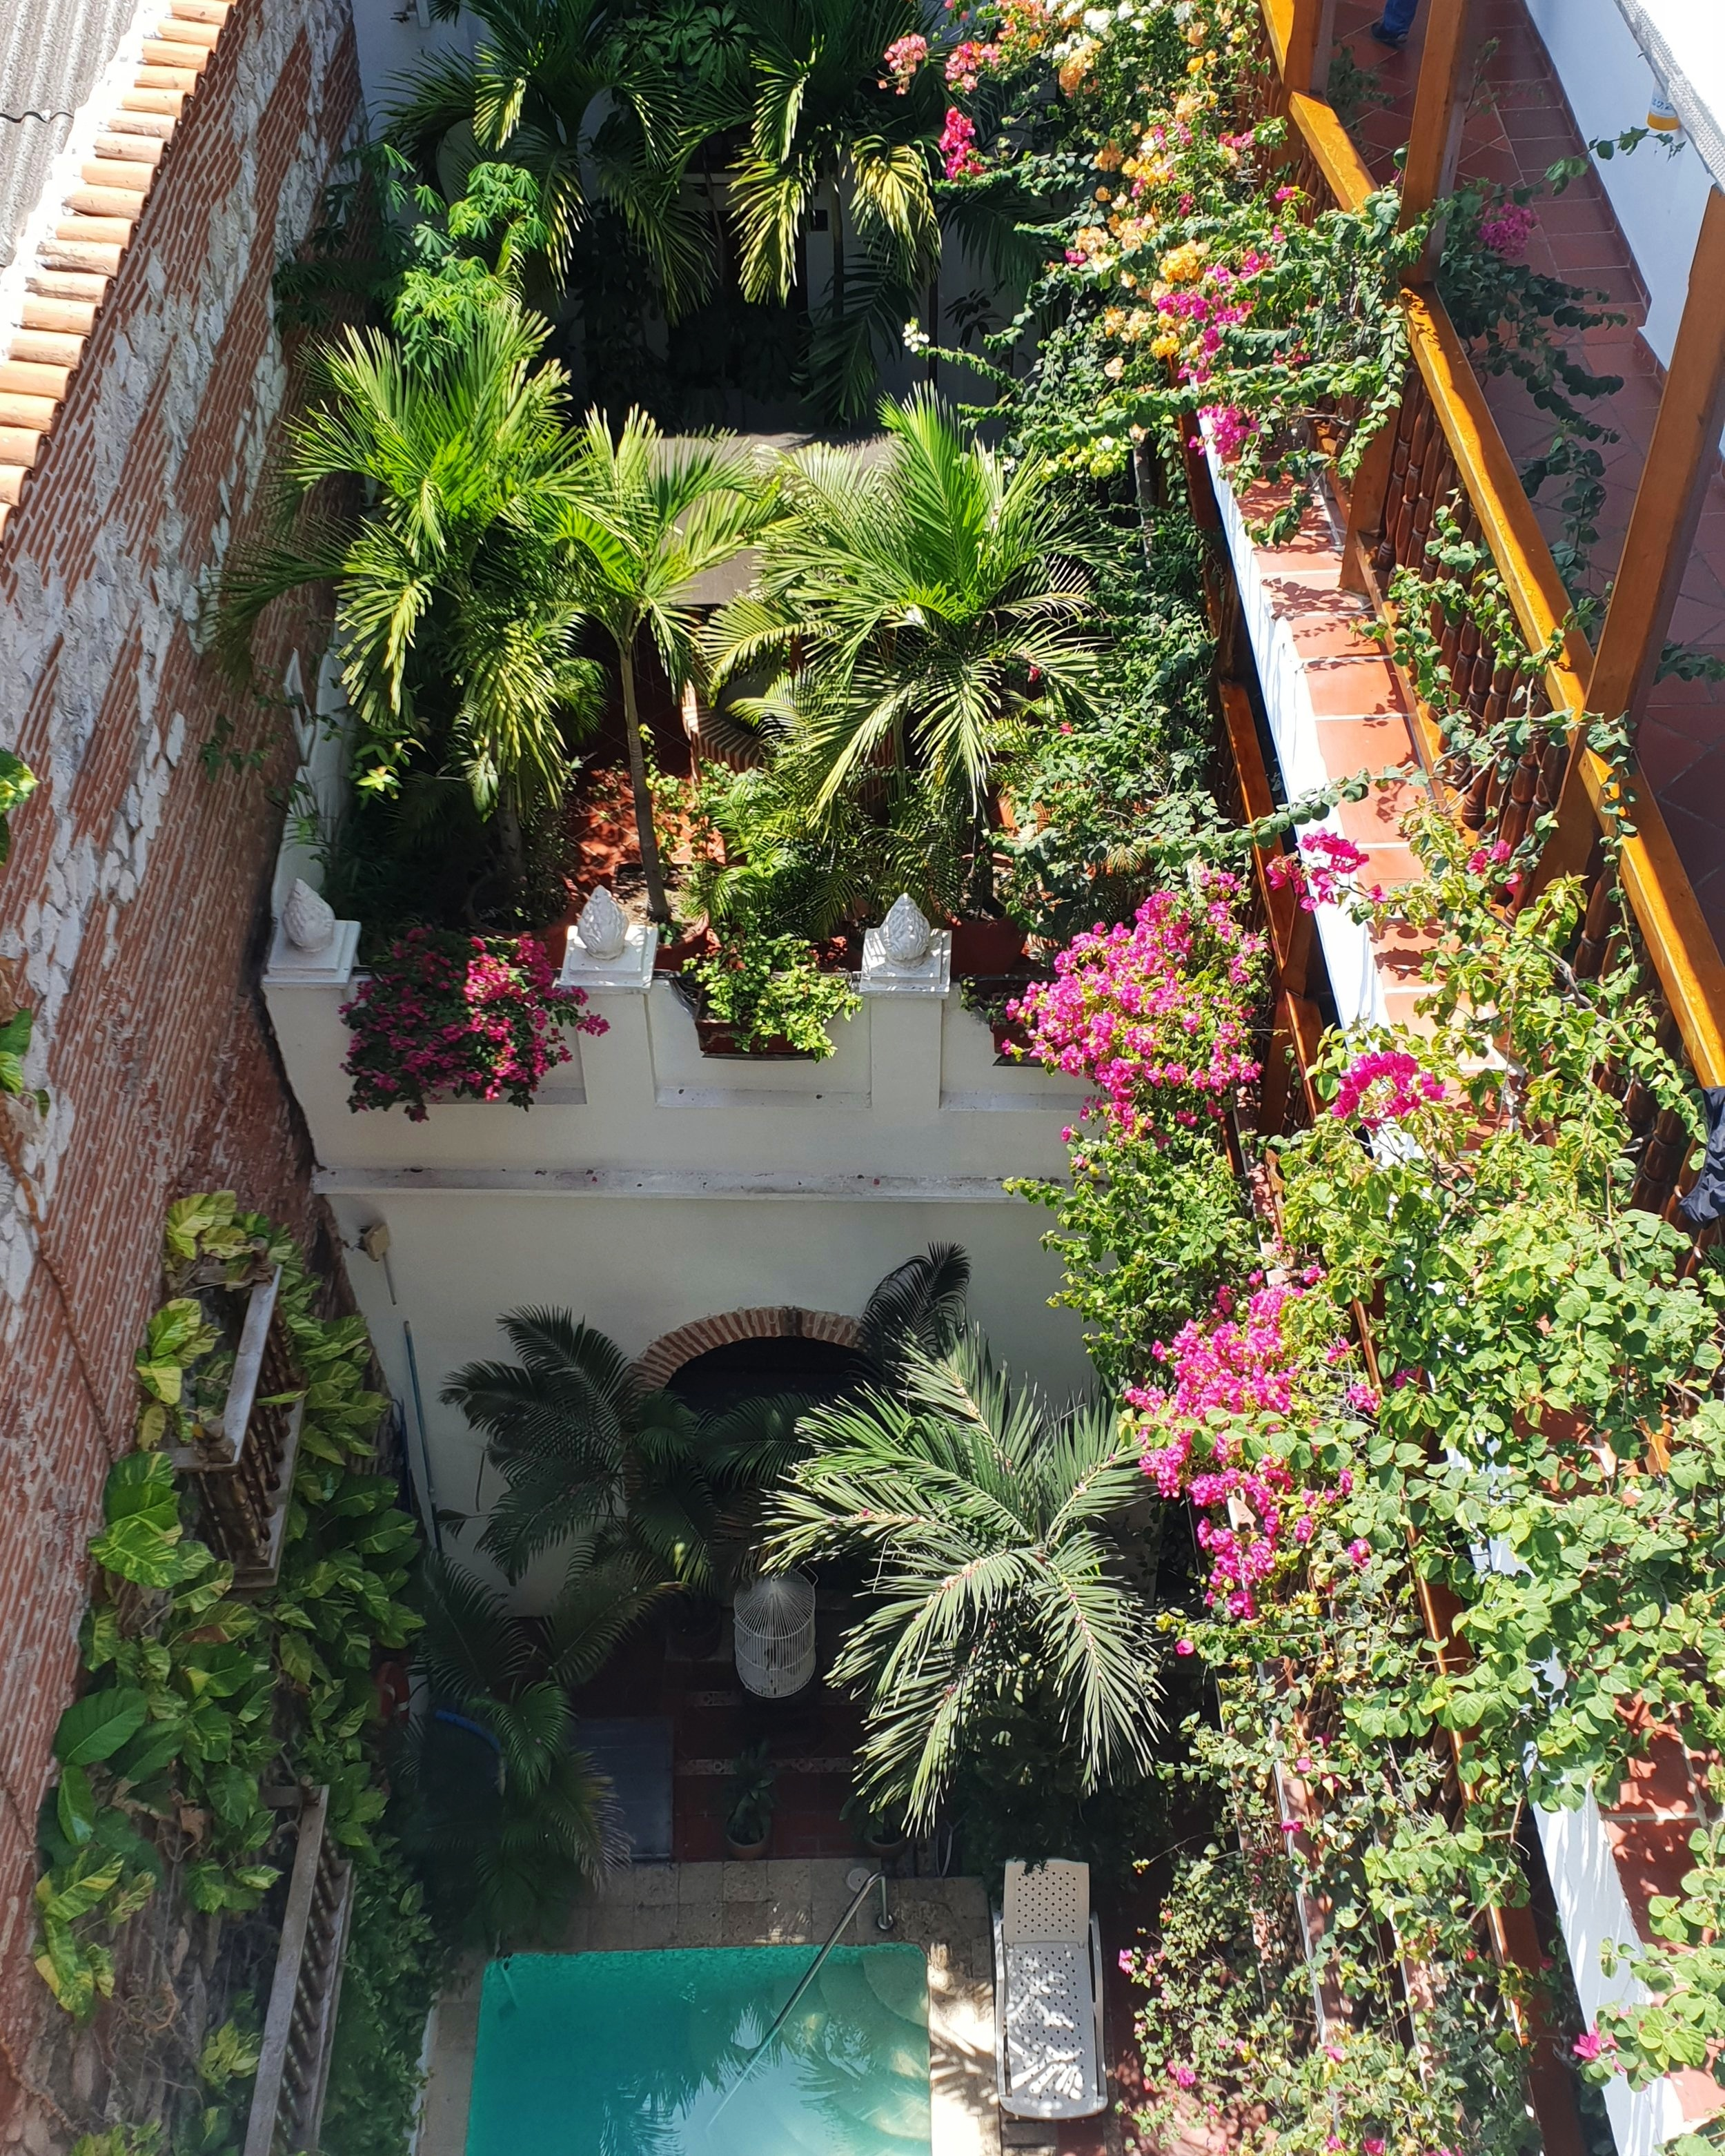 Cartagena is famous for its colourful courtyards, as well as its rooftop bars.